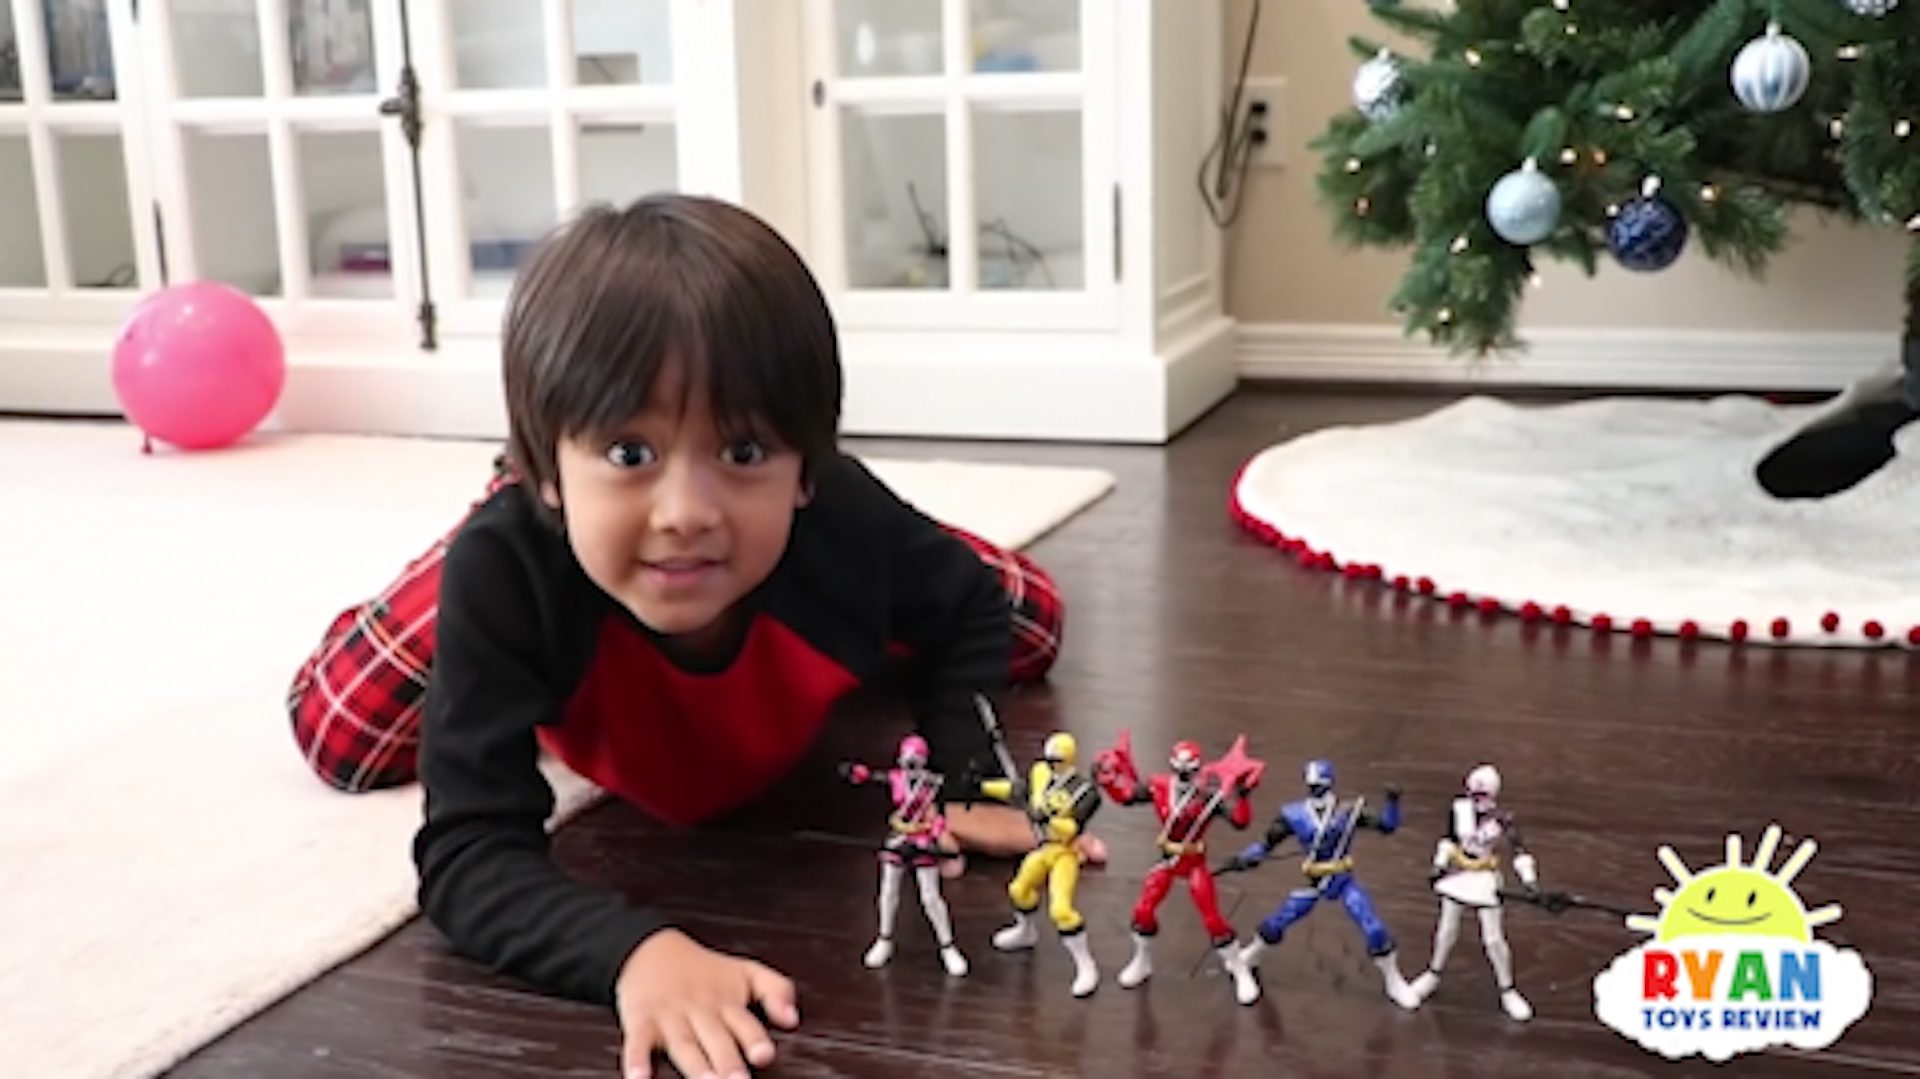 This 6-year-old makes $11 million a year reviewing toys on YouTube